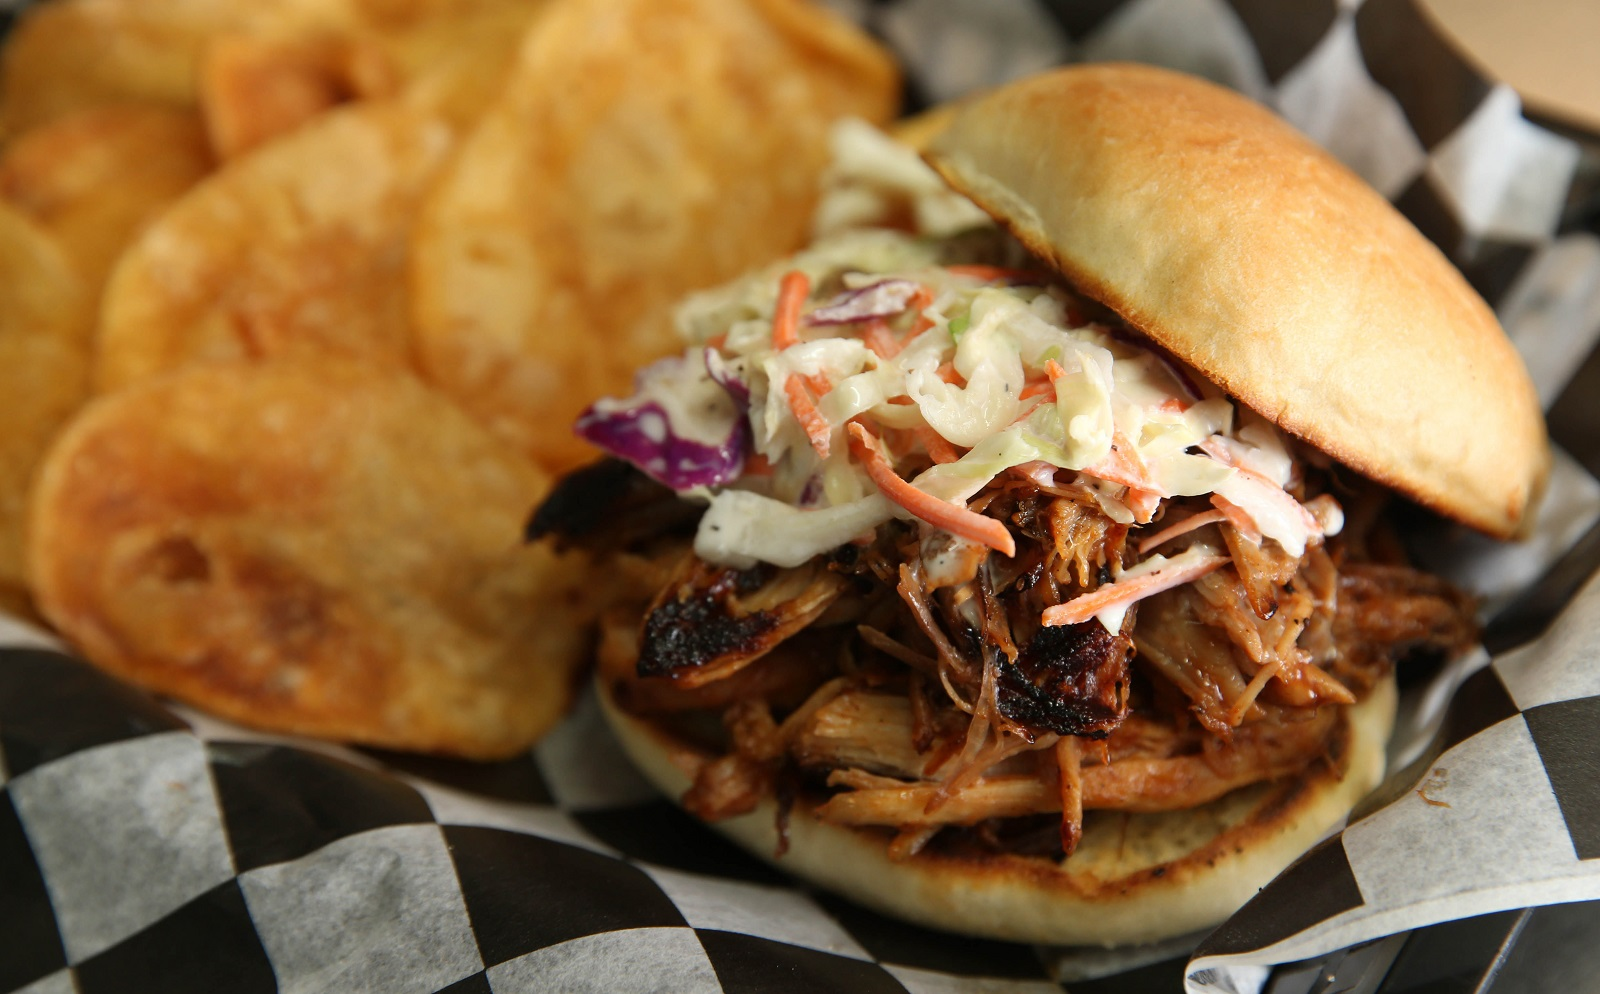 R&R BBQ's pulled pork sandwich with housemade chips. (Sharon Cantillon/Buffalo News)